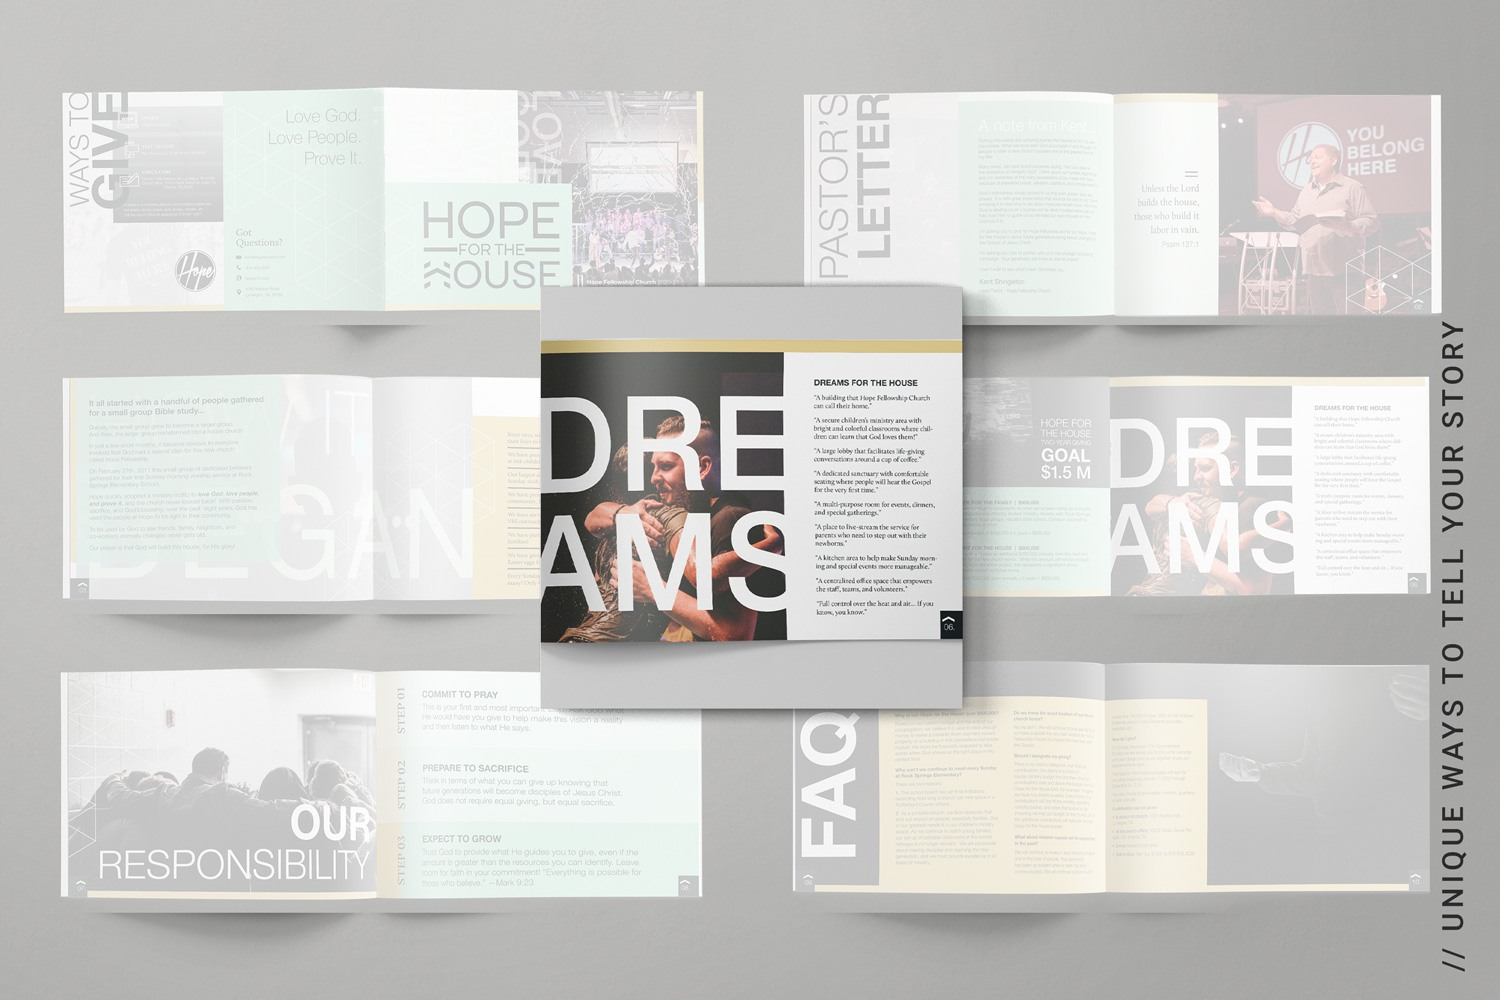 Best practices for capital campaign brochures, church and nonprofit fundraising design